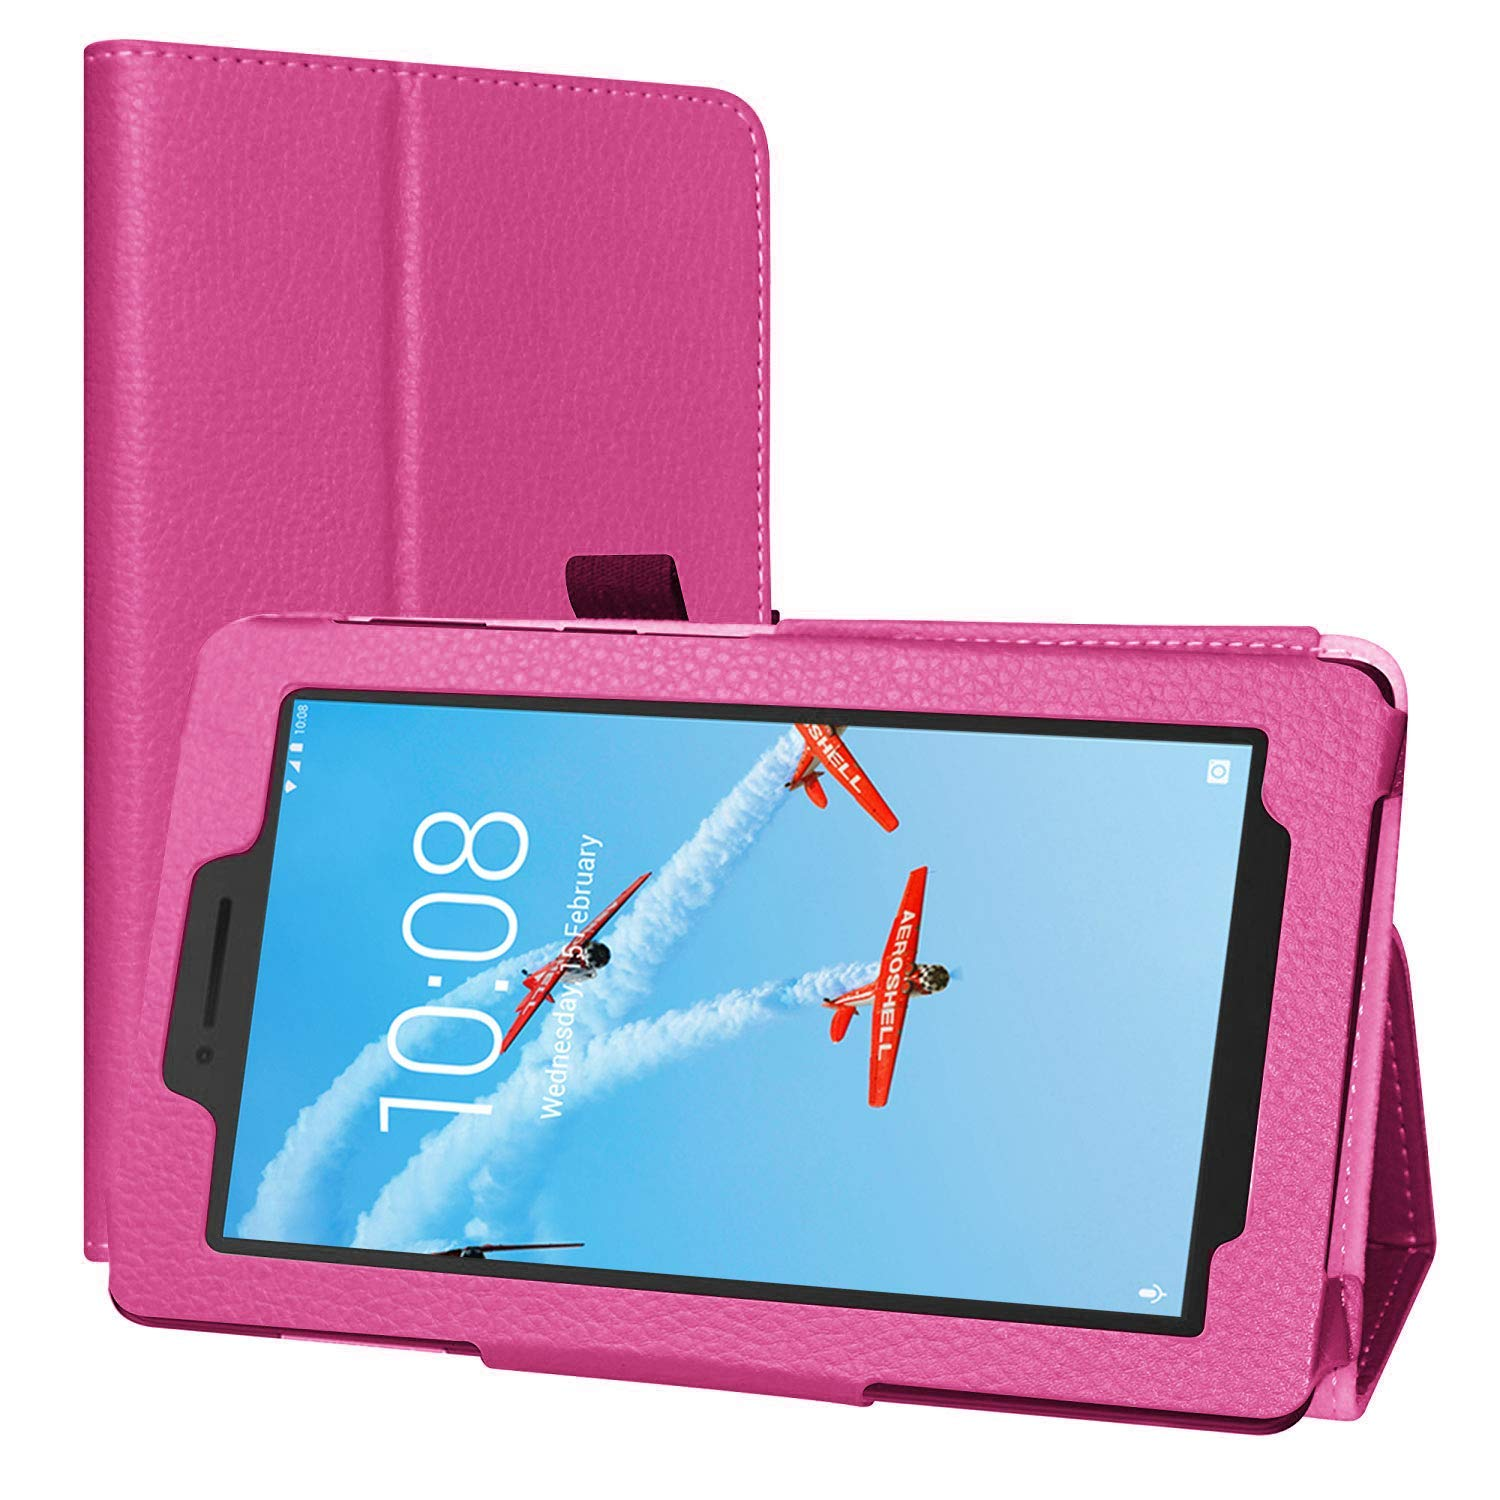 Lenovo Tab E7 Case, EpicGadget Lightweight Cover Folio PU Leather Folding Stand Case for Lenovo E7 7 Inch Tablet 2018 (Pink)